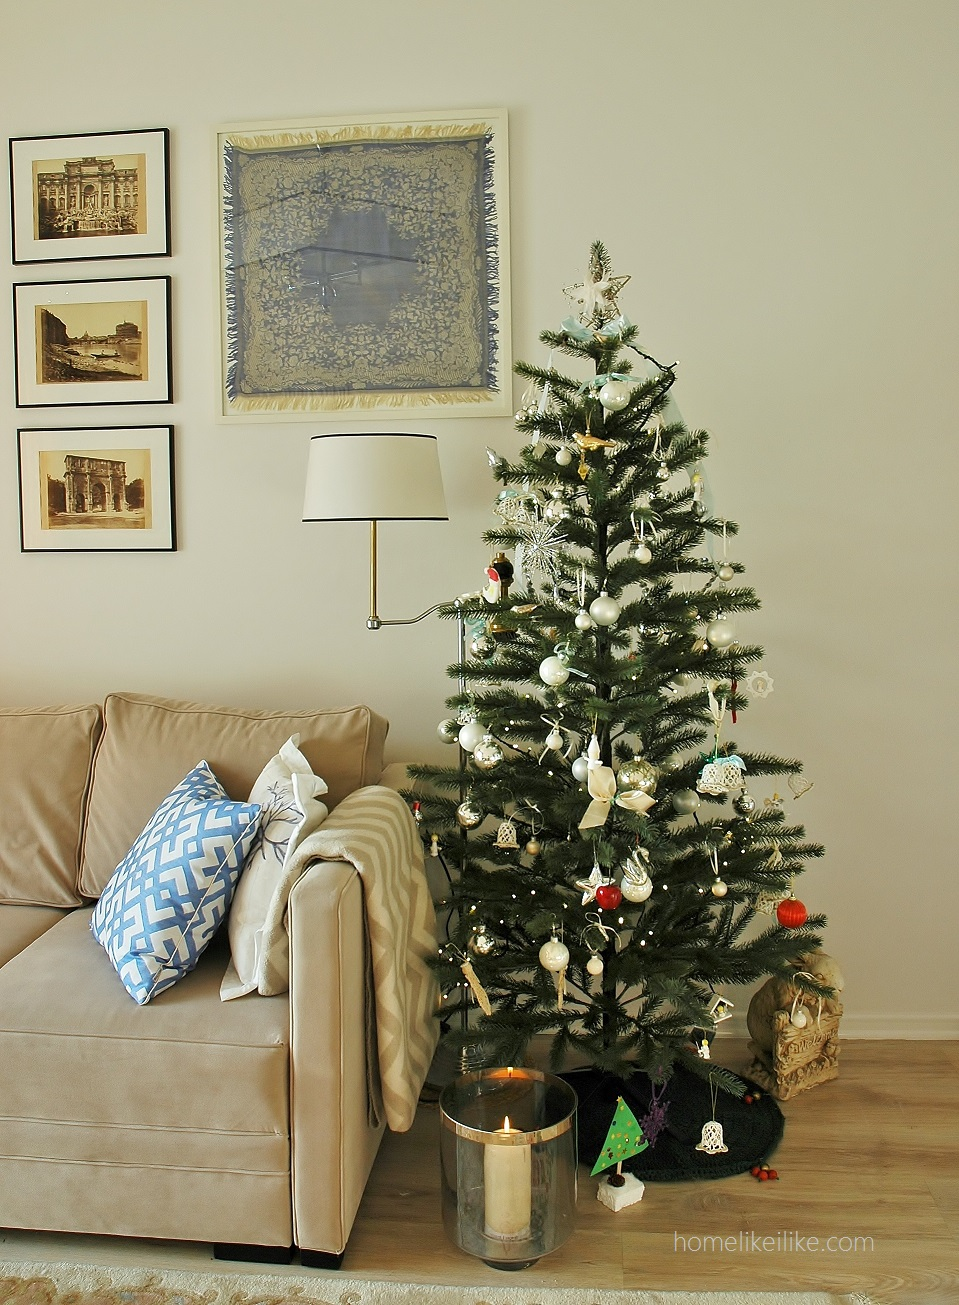 christmas tree from ikea - homelikeilike.com